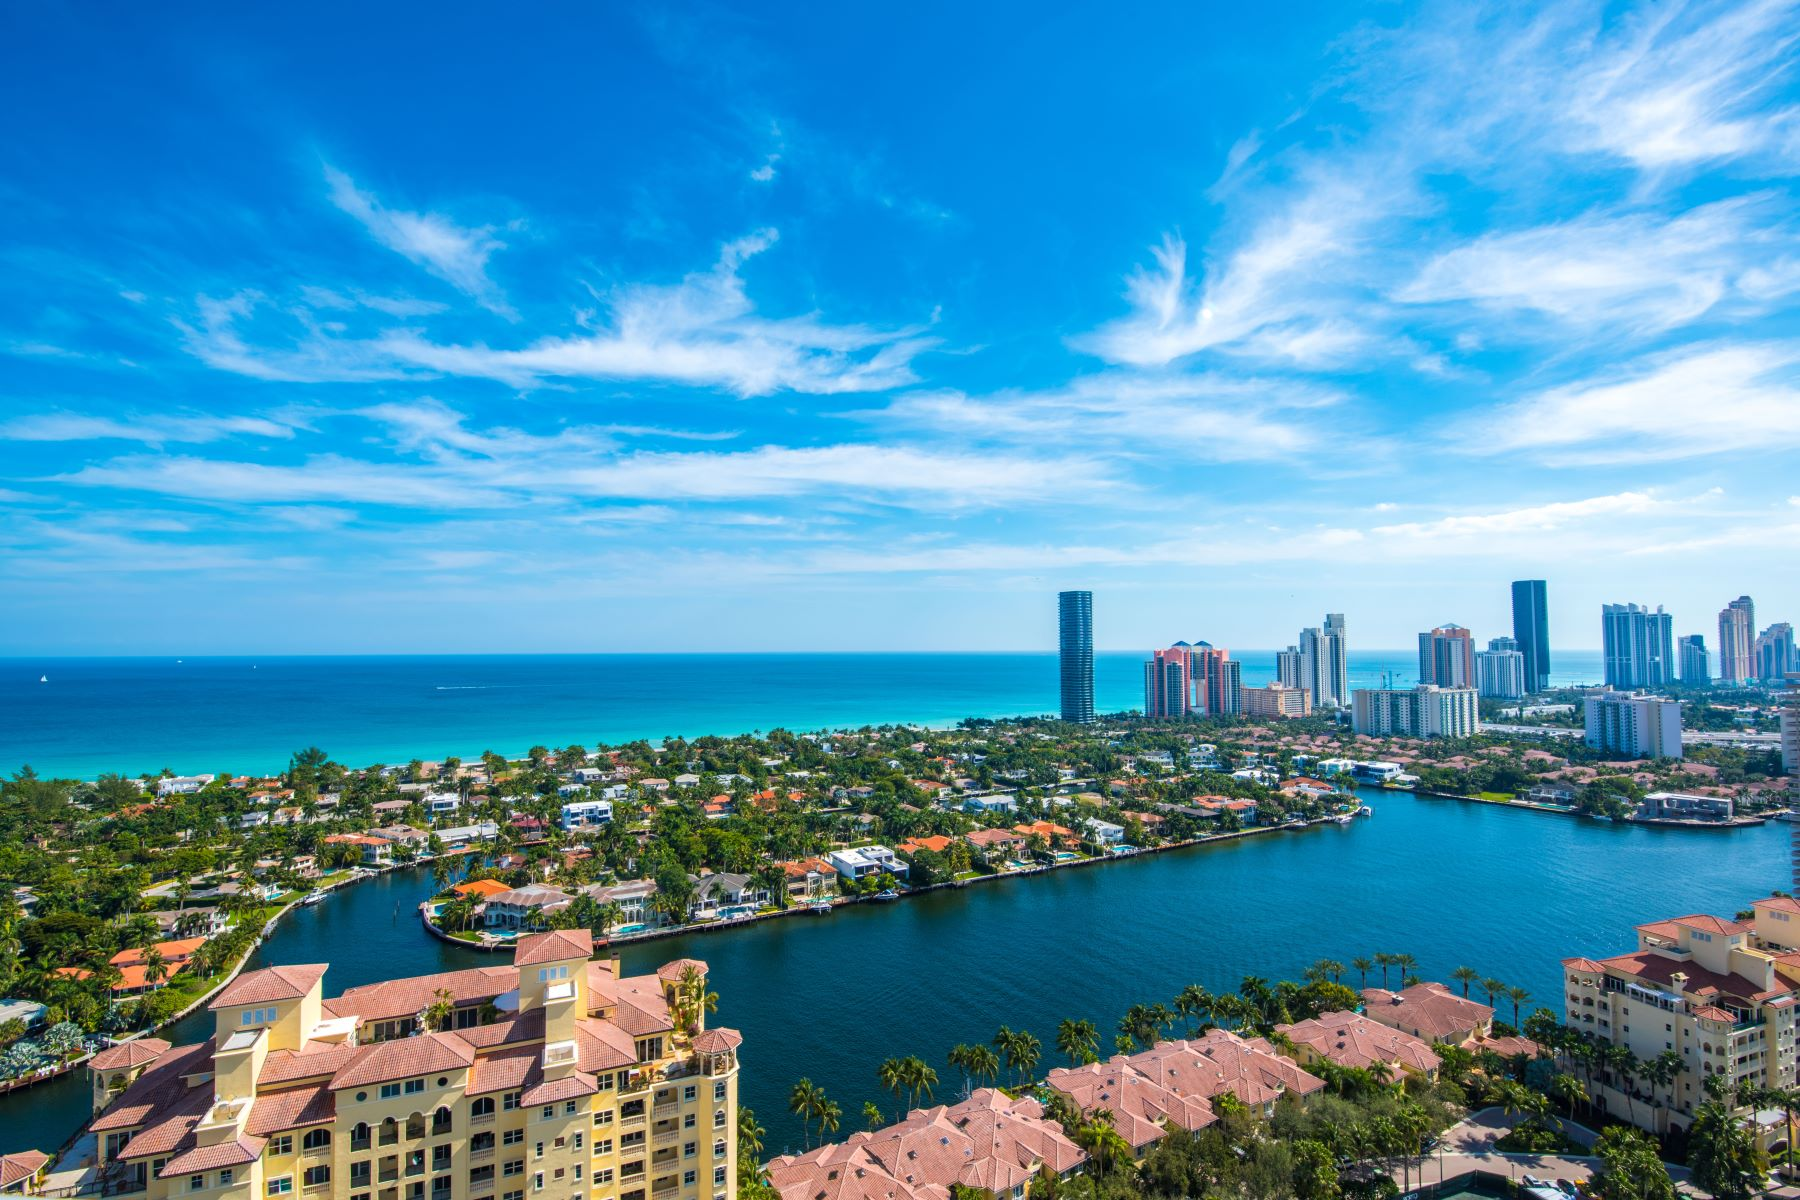 شقة بعمارة للـ Sale في 20155 Ne 38th Ct 20155 Ne 38th Ct TS-03, Aventura, Florida, 33180 United States